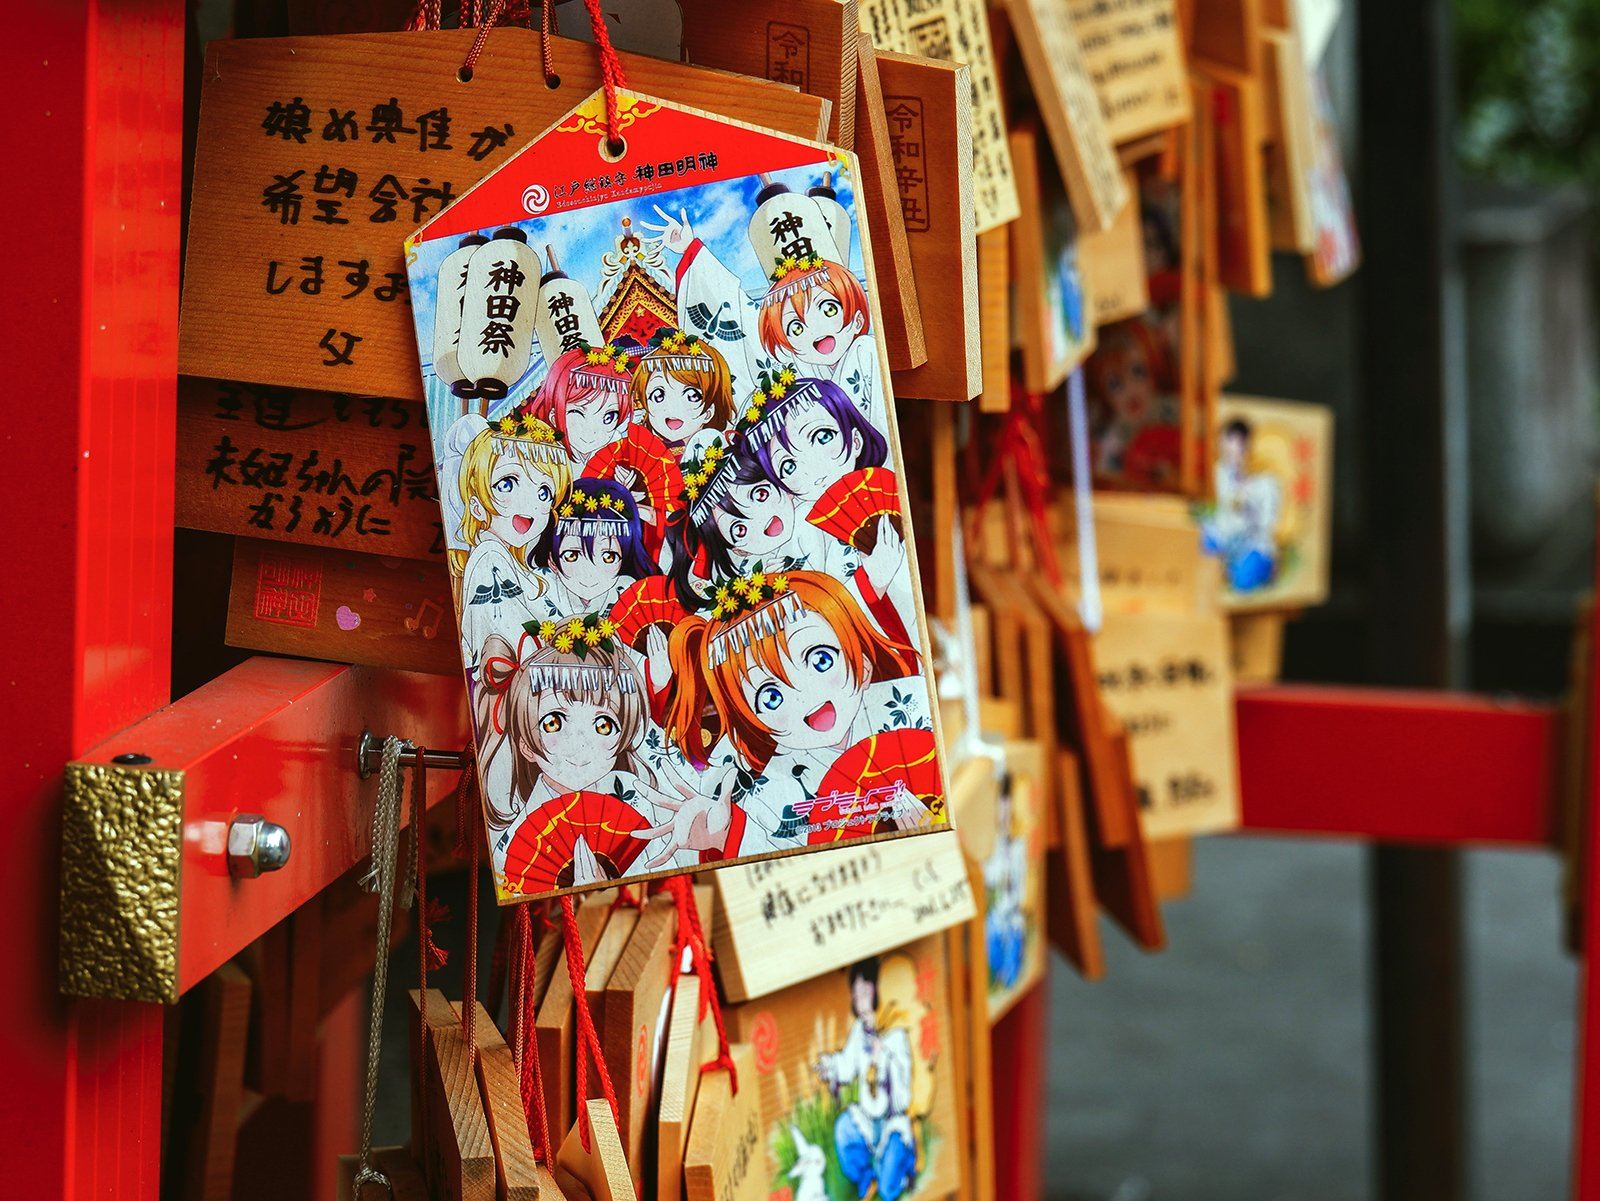 A prayer plaque with anime characters hangs at the Kanda Shinto Shrine in Tokyo, Japan, on July 1, 2021. Photo by Susann Schuster/Unsplash/Creative Commons